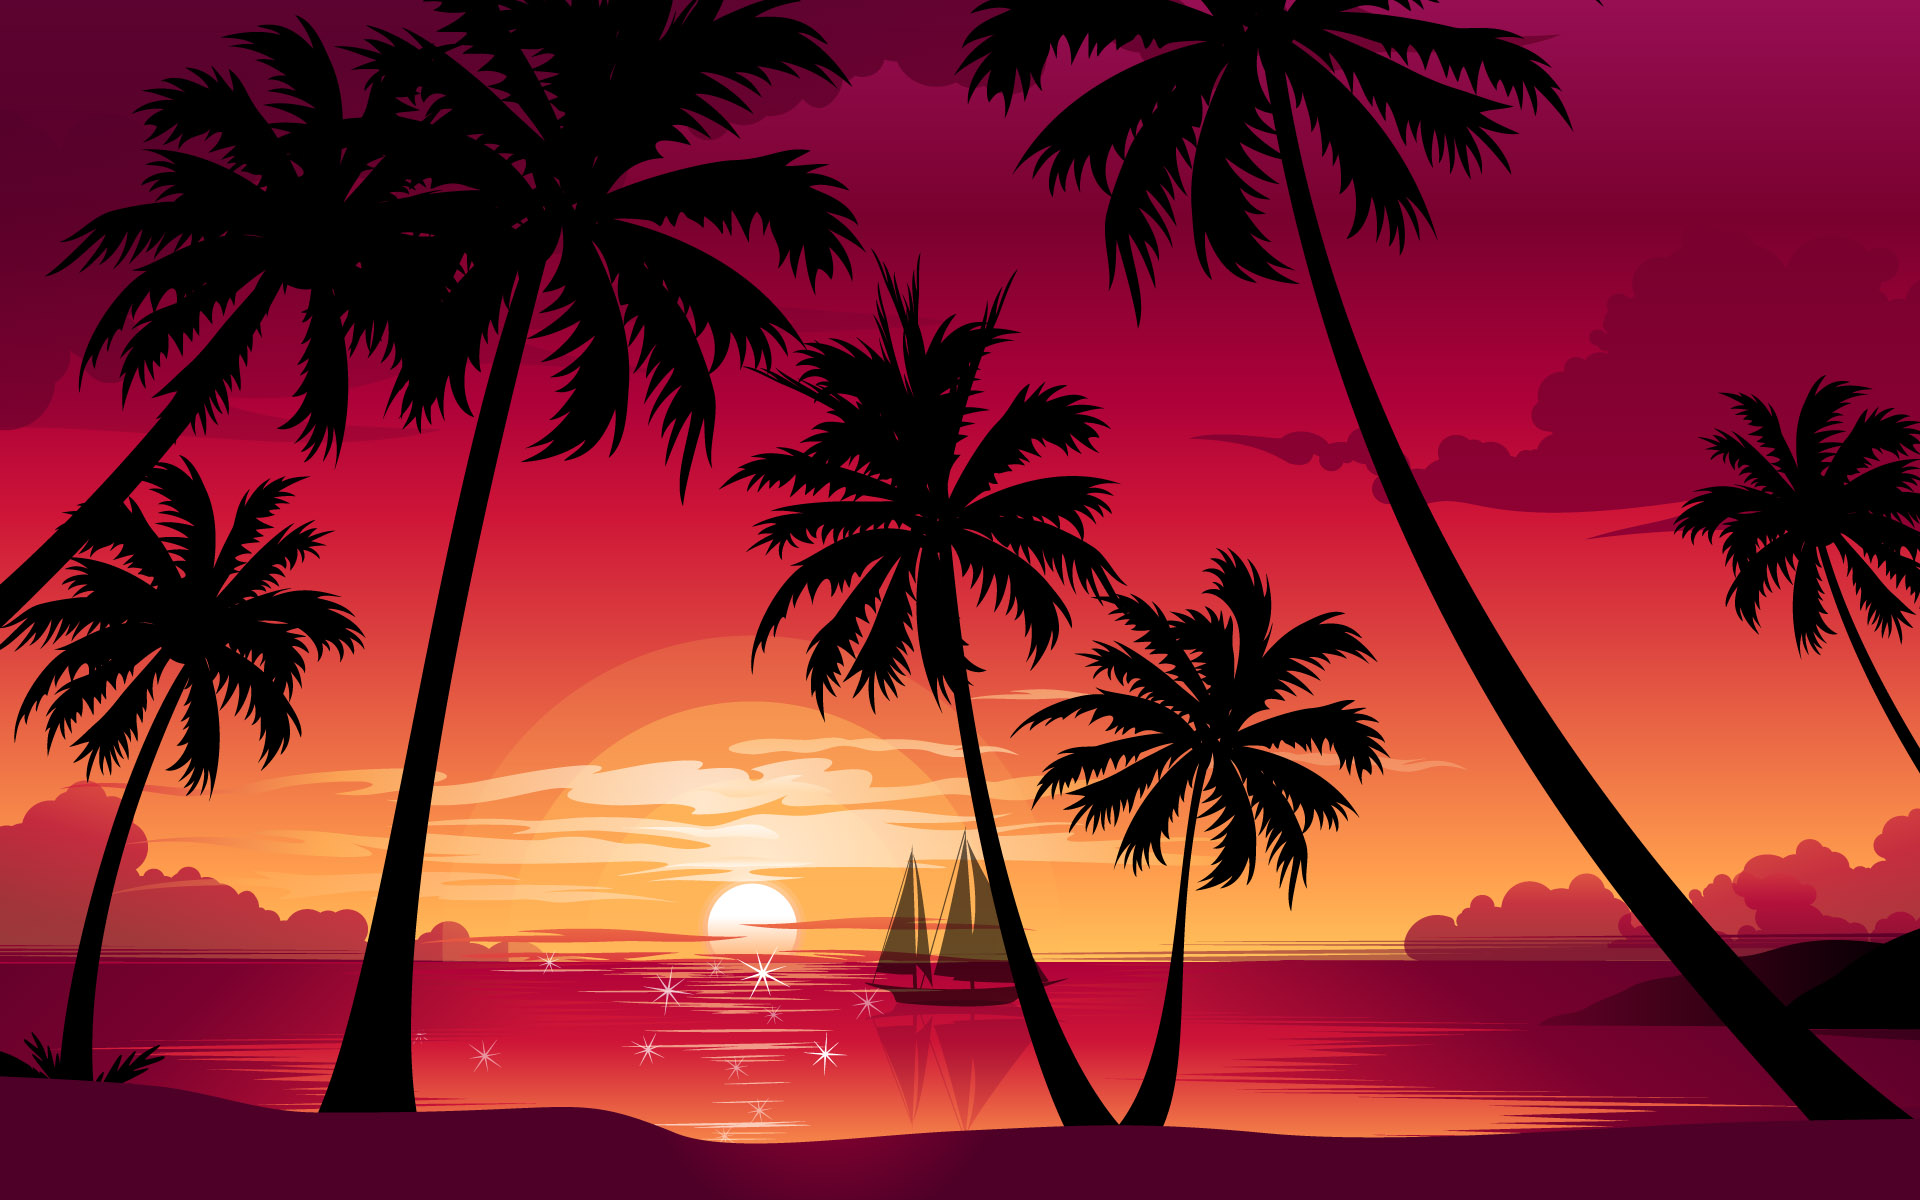 Sunset HD Wallpapers | ImageBank.biz